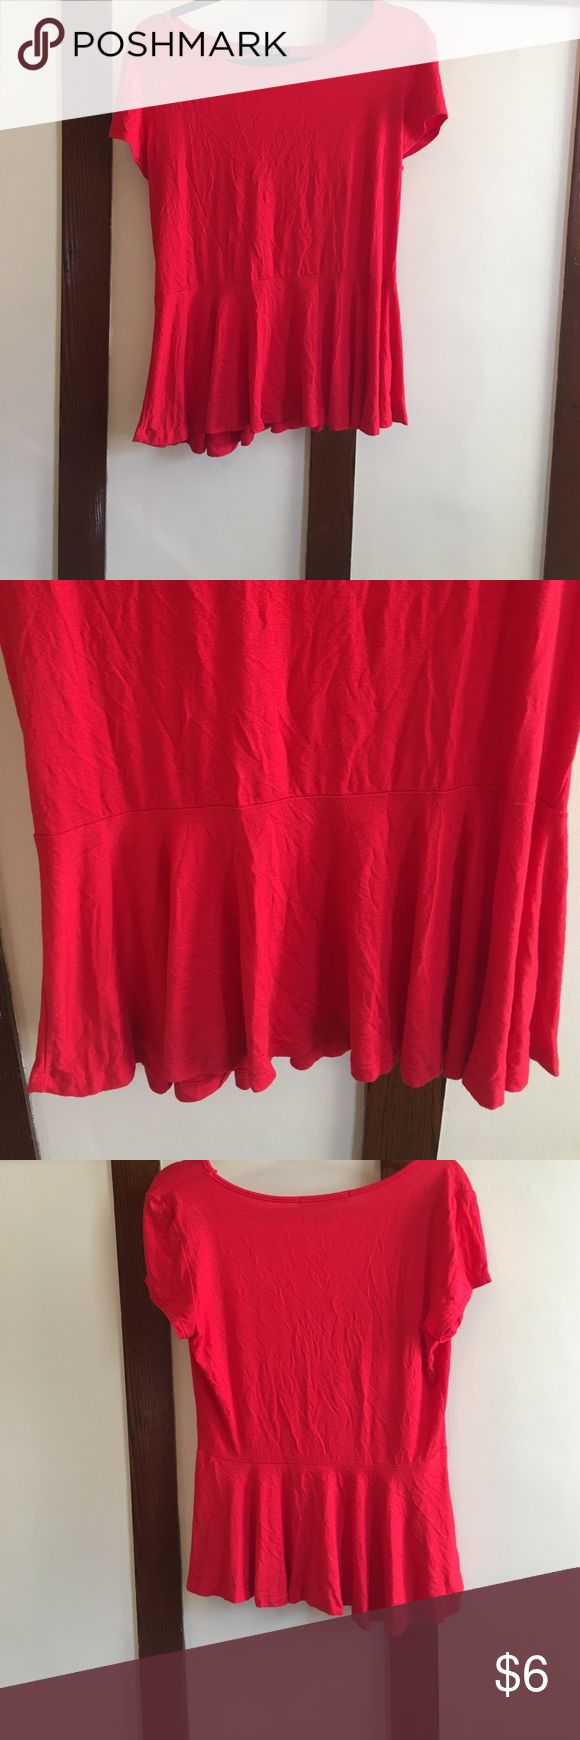 Relaxed peplum top Red short sleeve top with a relaxed peplum style. Loose soft style made of rayon and spandex. Never worn but does not have tags. Forever 21 Tops Tees - Short Sleeve